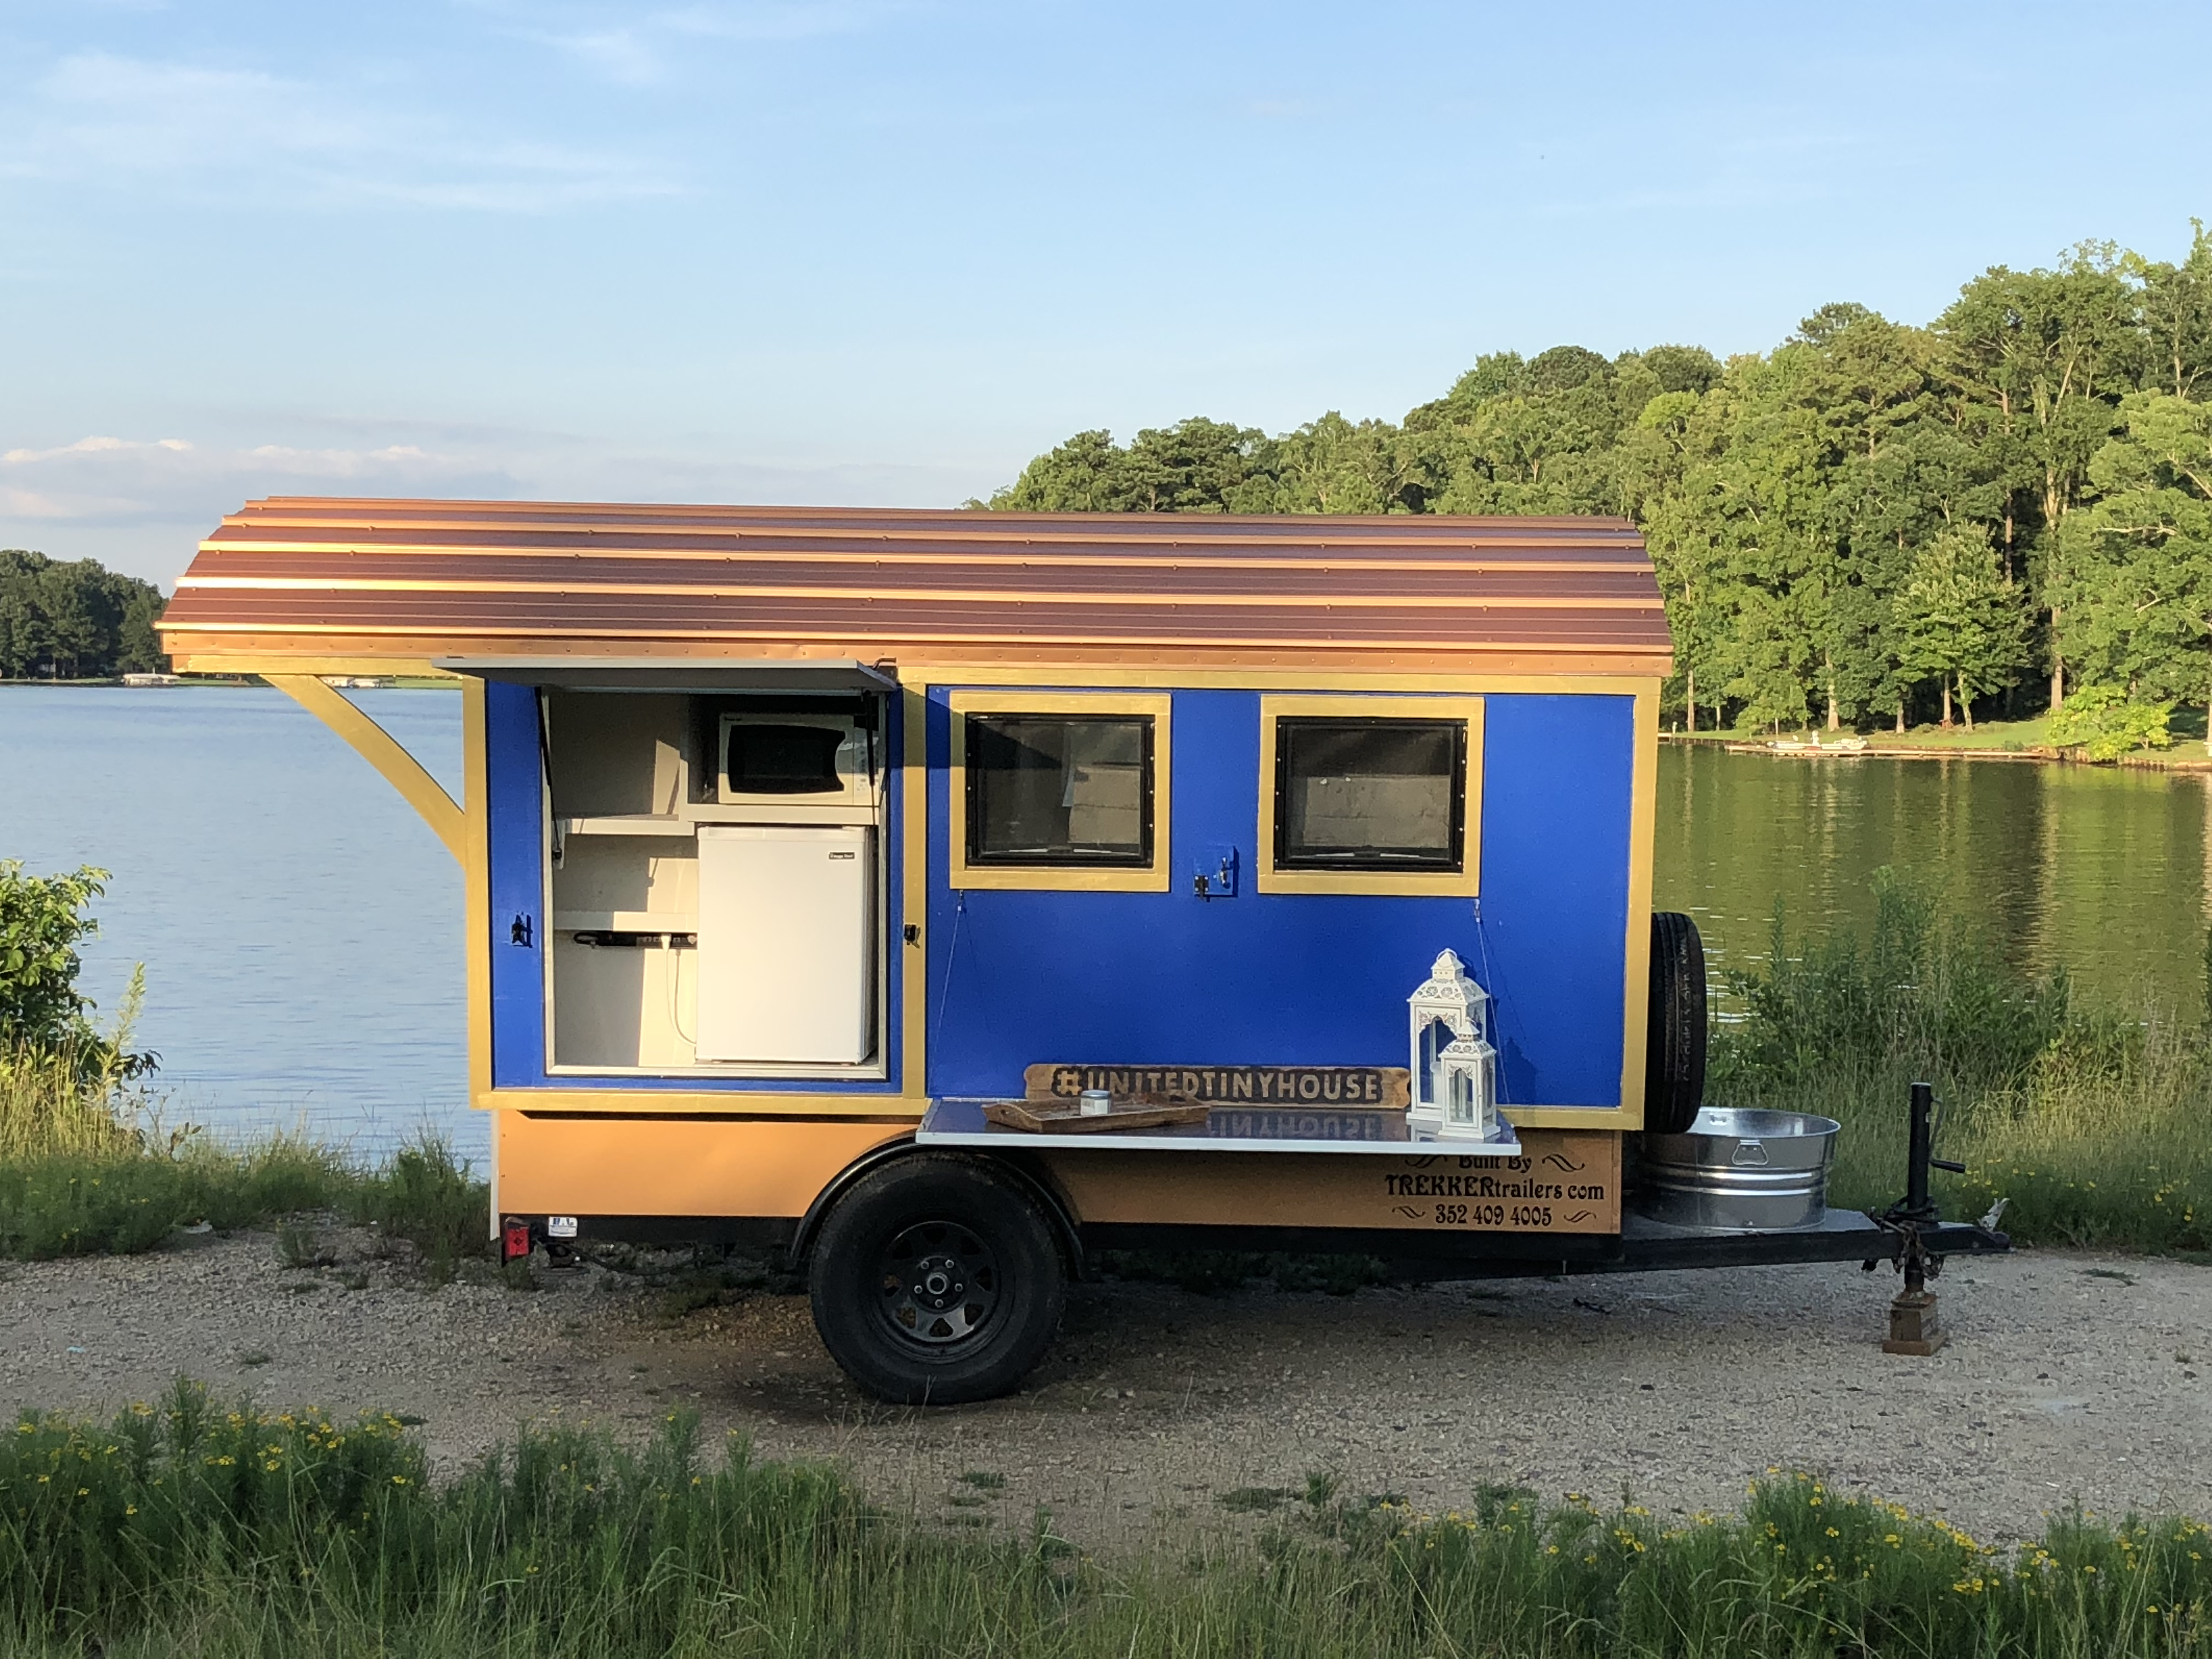 Super light weight and easy to tow; weight approximately 1,500lbs. Trekker Trailers Gypsy Wagon 2016